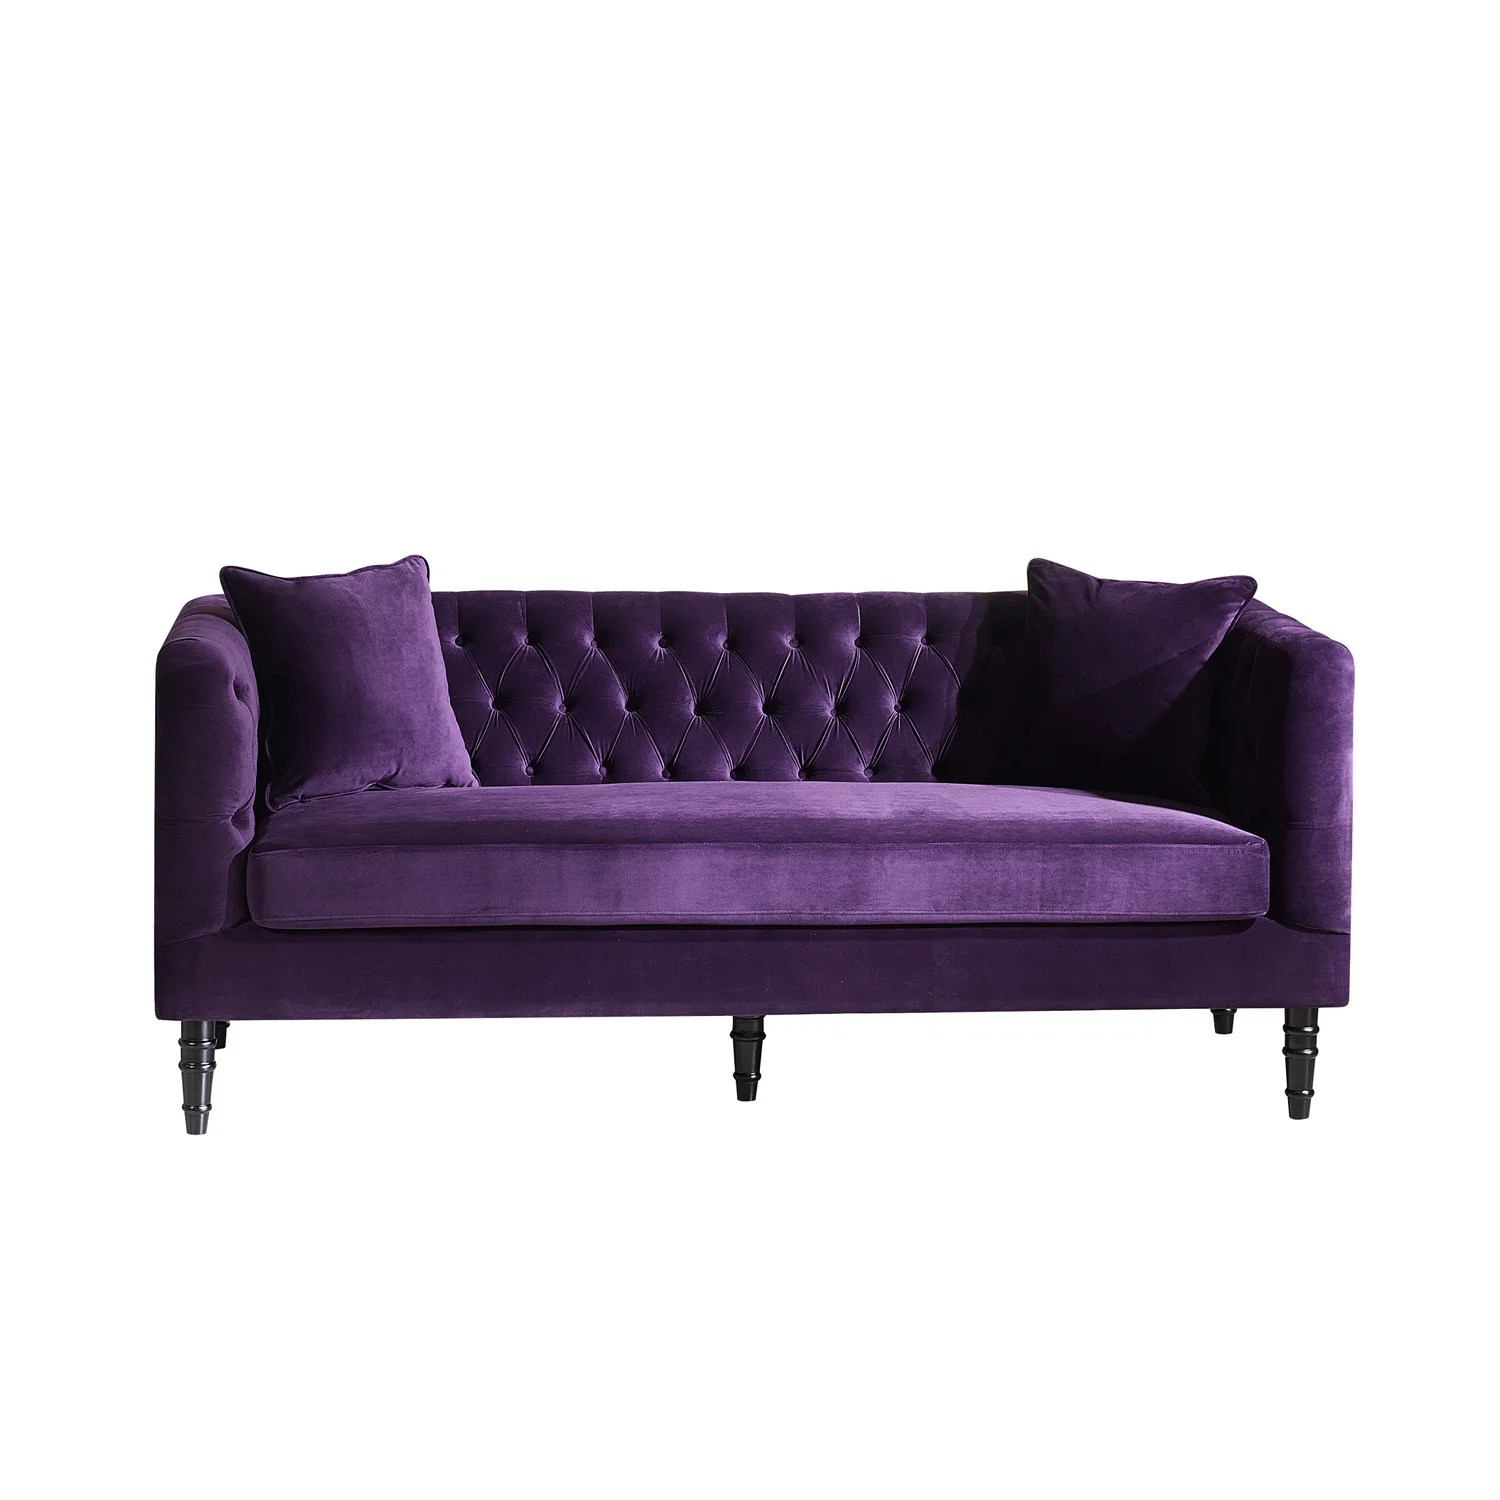 purple velvet upholstered sofa gray sectional with chaise lounge flynn french inspired